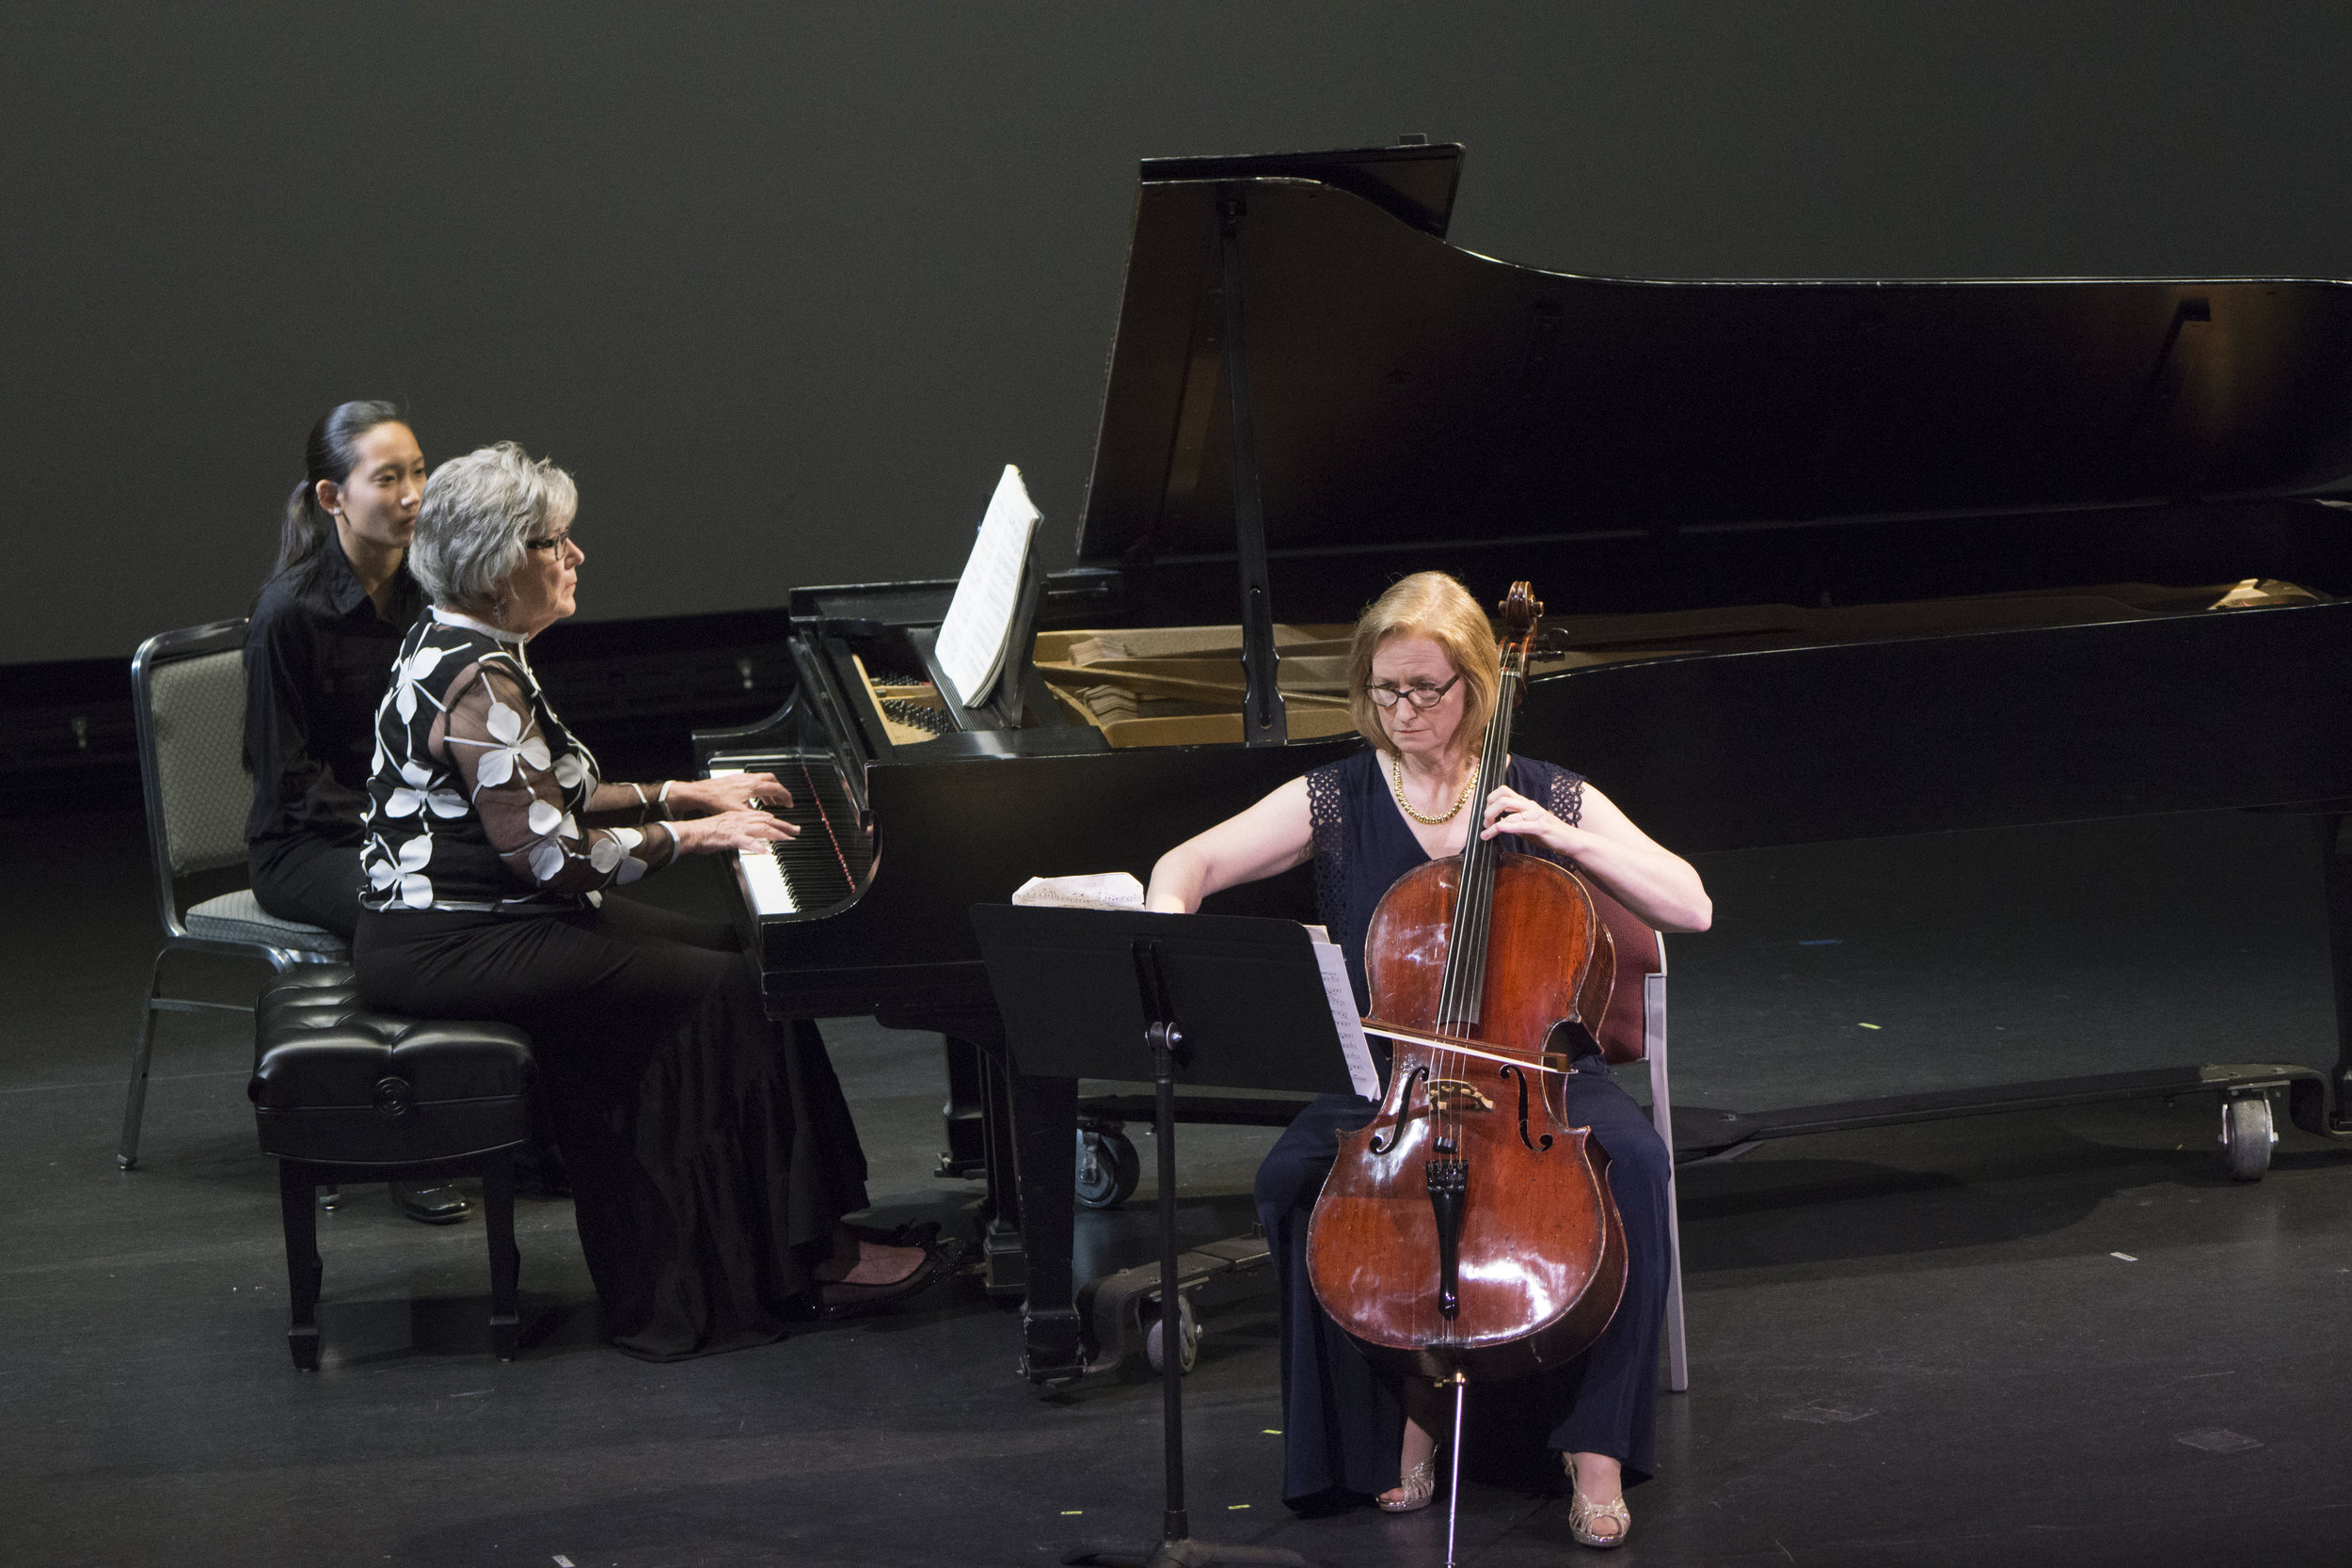 Thank you for your continued financial support. - Our programs and educational concerts rely on our patrons who value high quality chamber music in the concert hall and in our area schools.